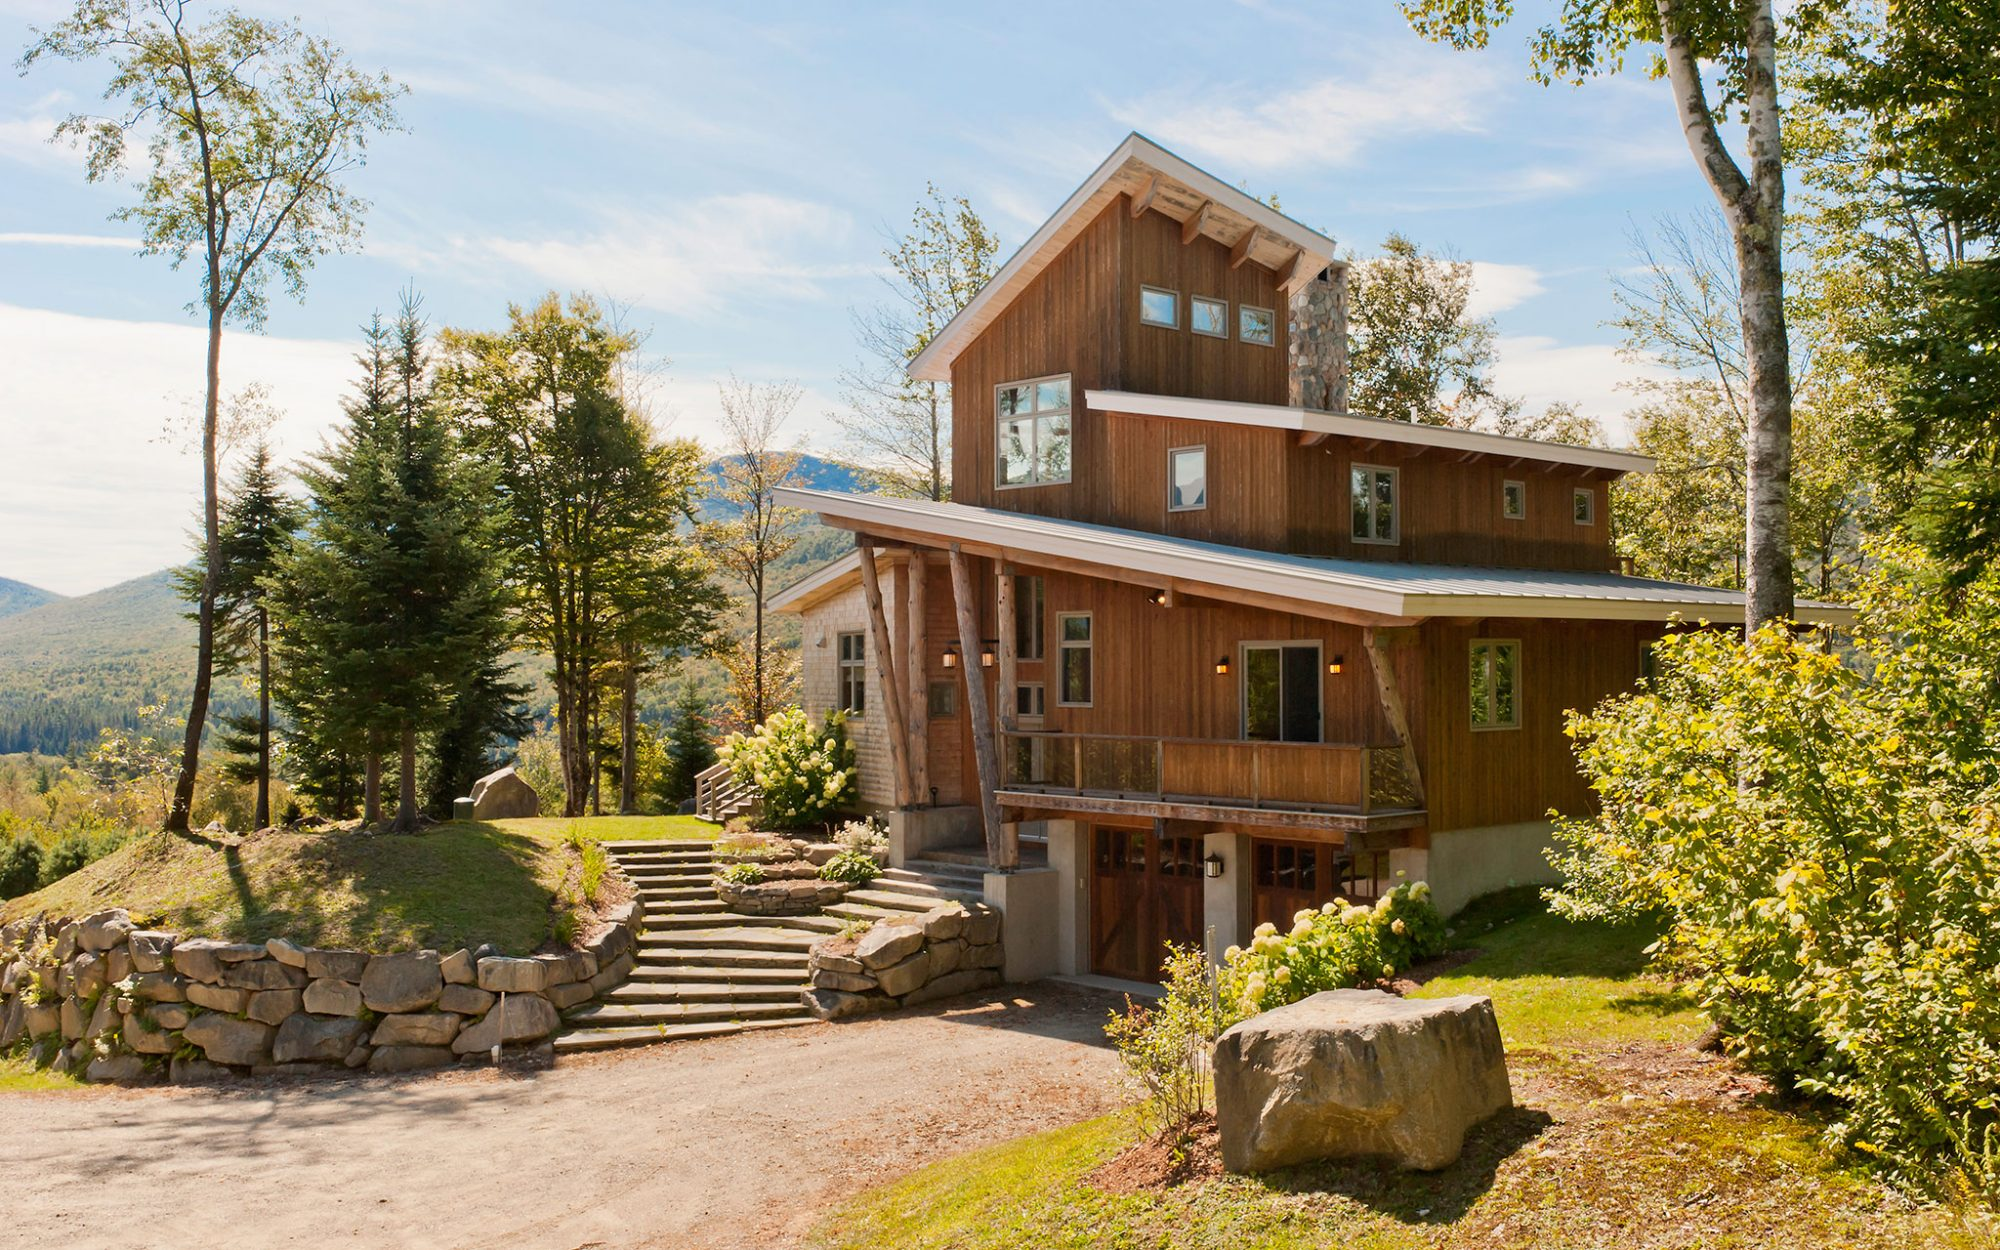 Celebrity Homes You Can Rent: Bode Miller: Carroll, NH